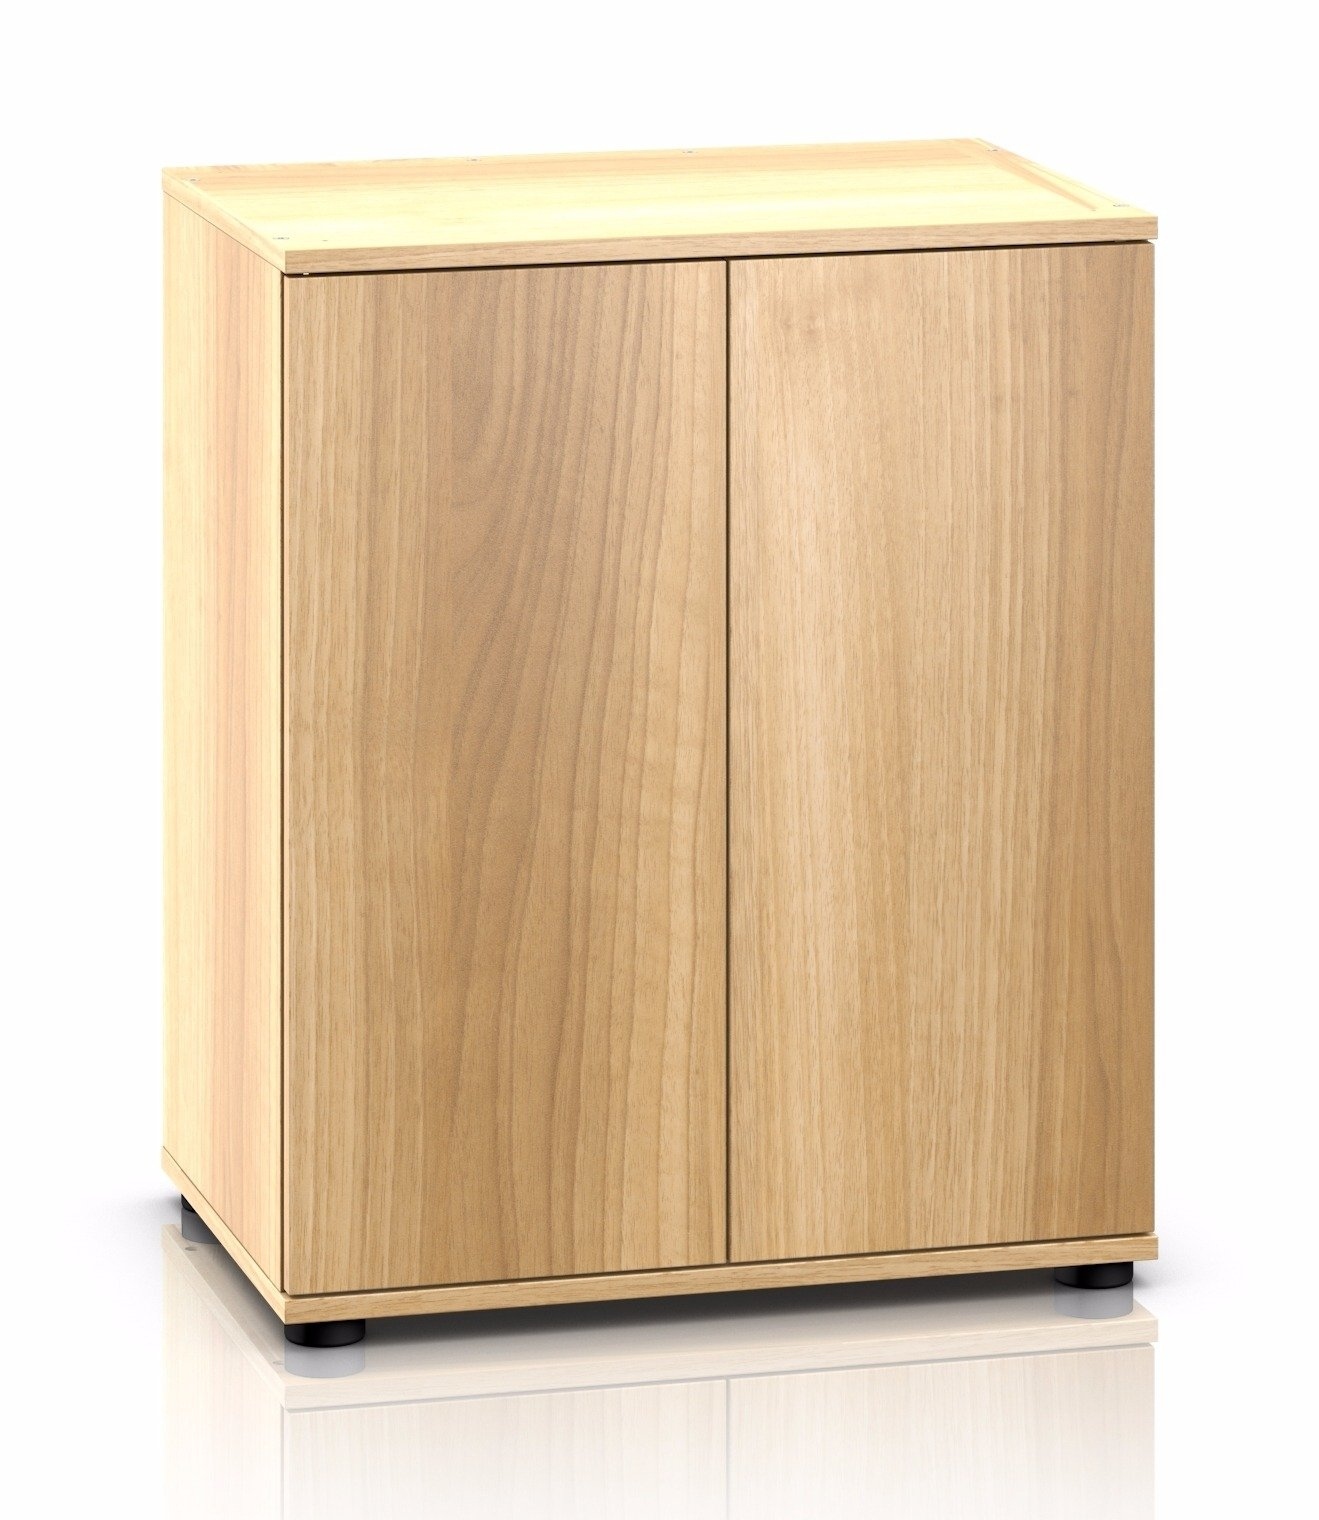 Lido 120 Cabinet - Light Wood